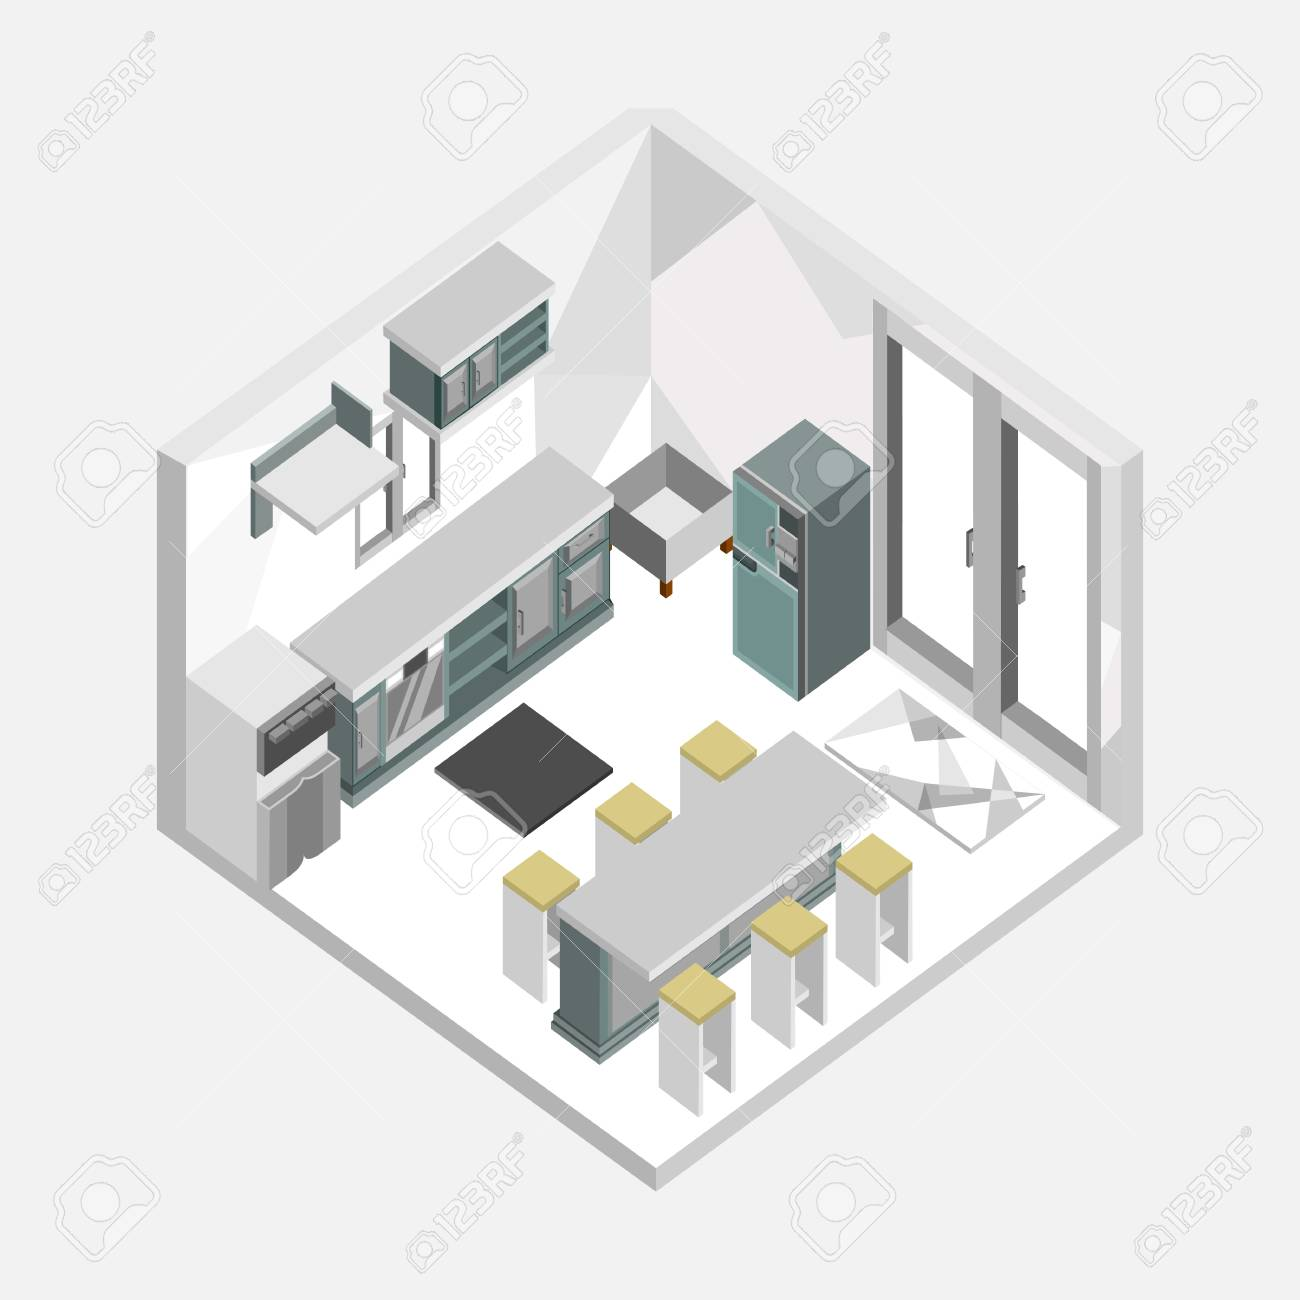 Grey Color Kitchen Isometric Home Interior Vector Illustration Royalty Free Cliparts Vectors And Stock Illustration Image 97794120